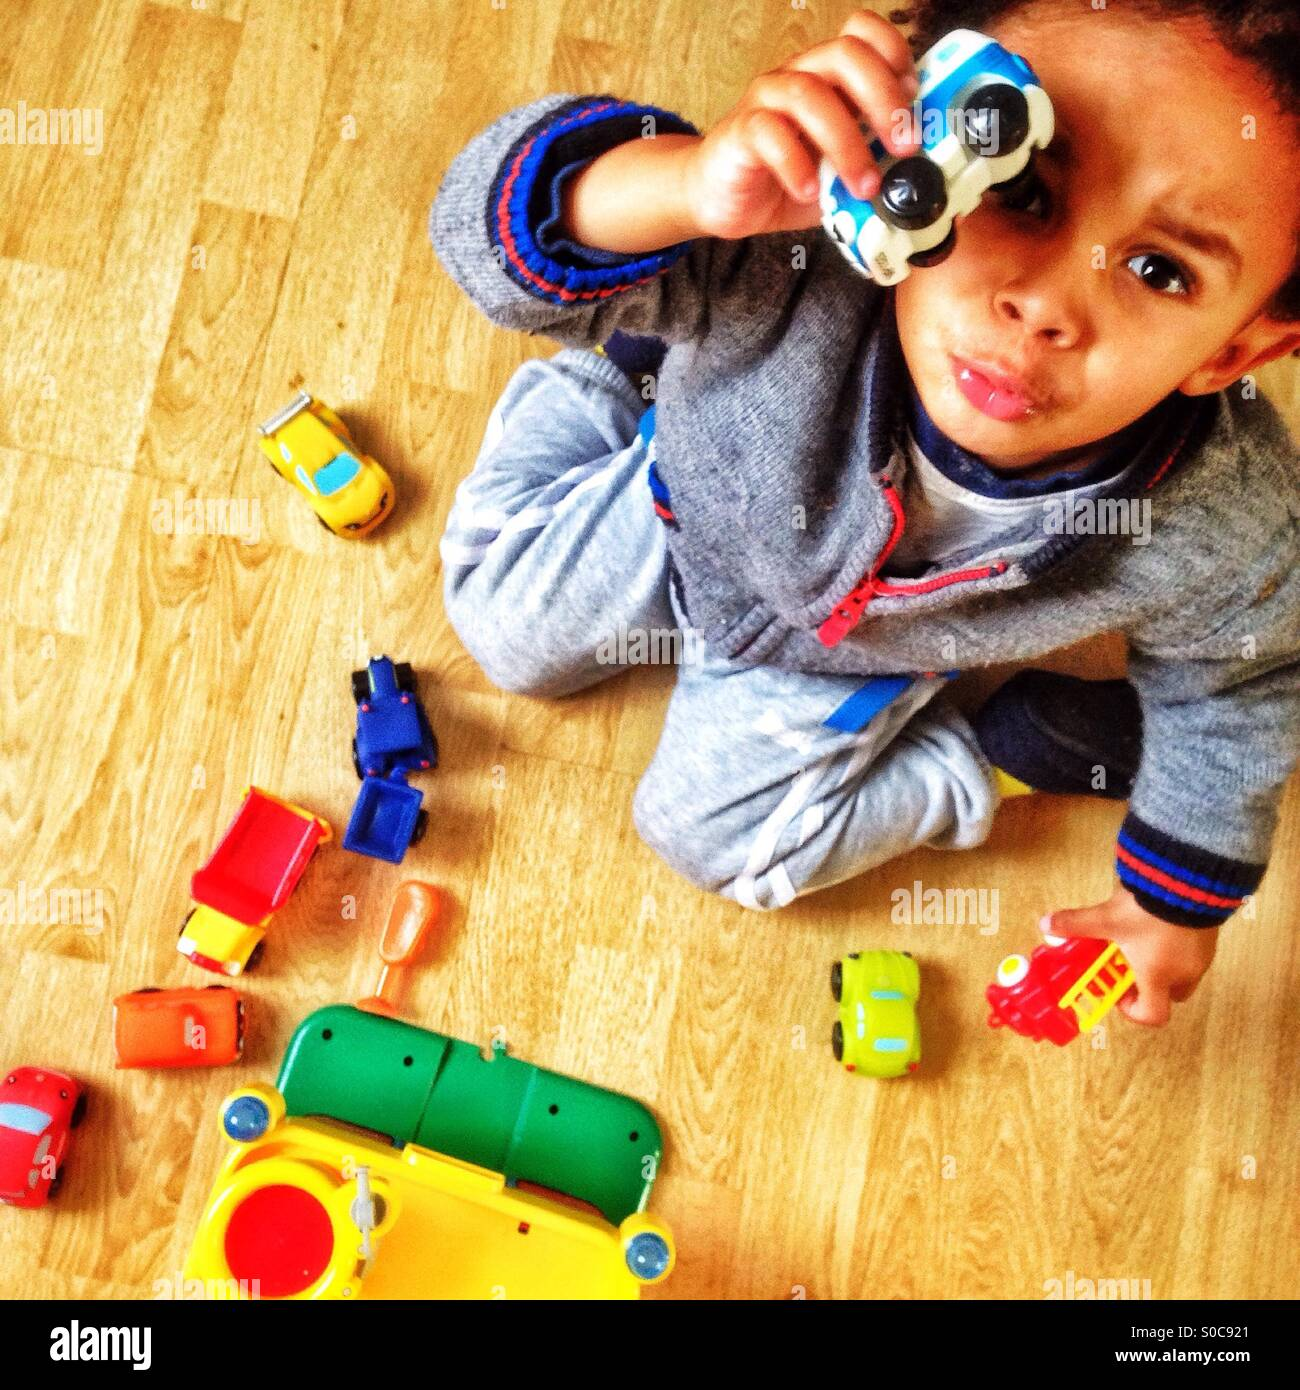 Little boy playing with his toys. - Stock Image